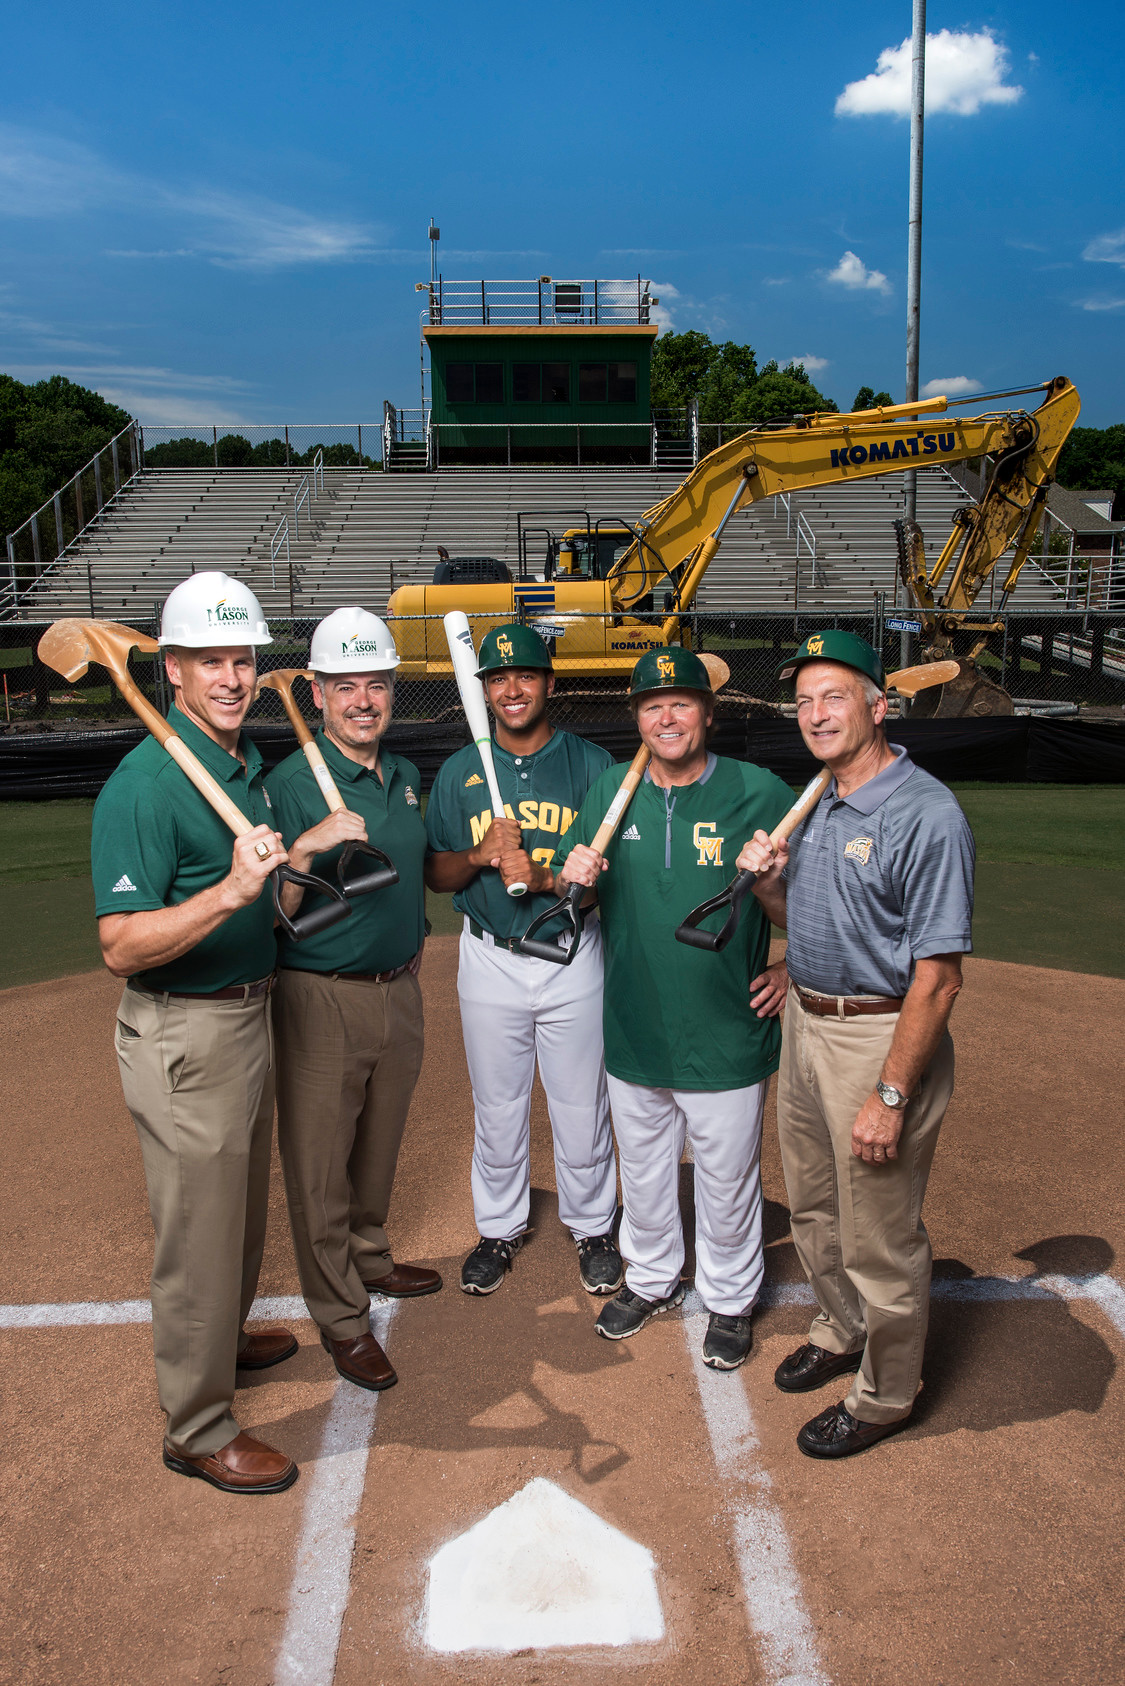 Baseball Stadium construction group photo. Photo by Evan Cantwell/Creative Services/George Mason University